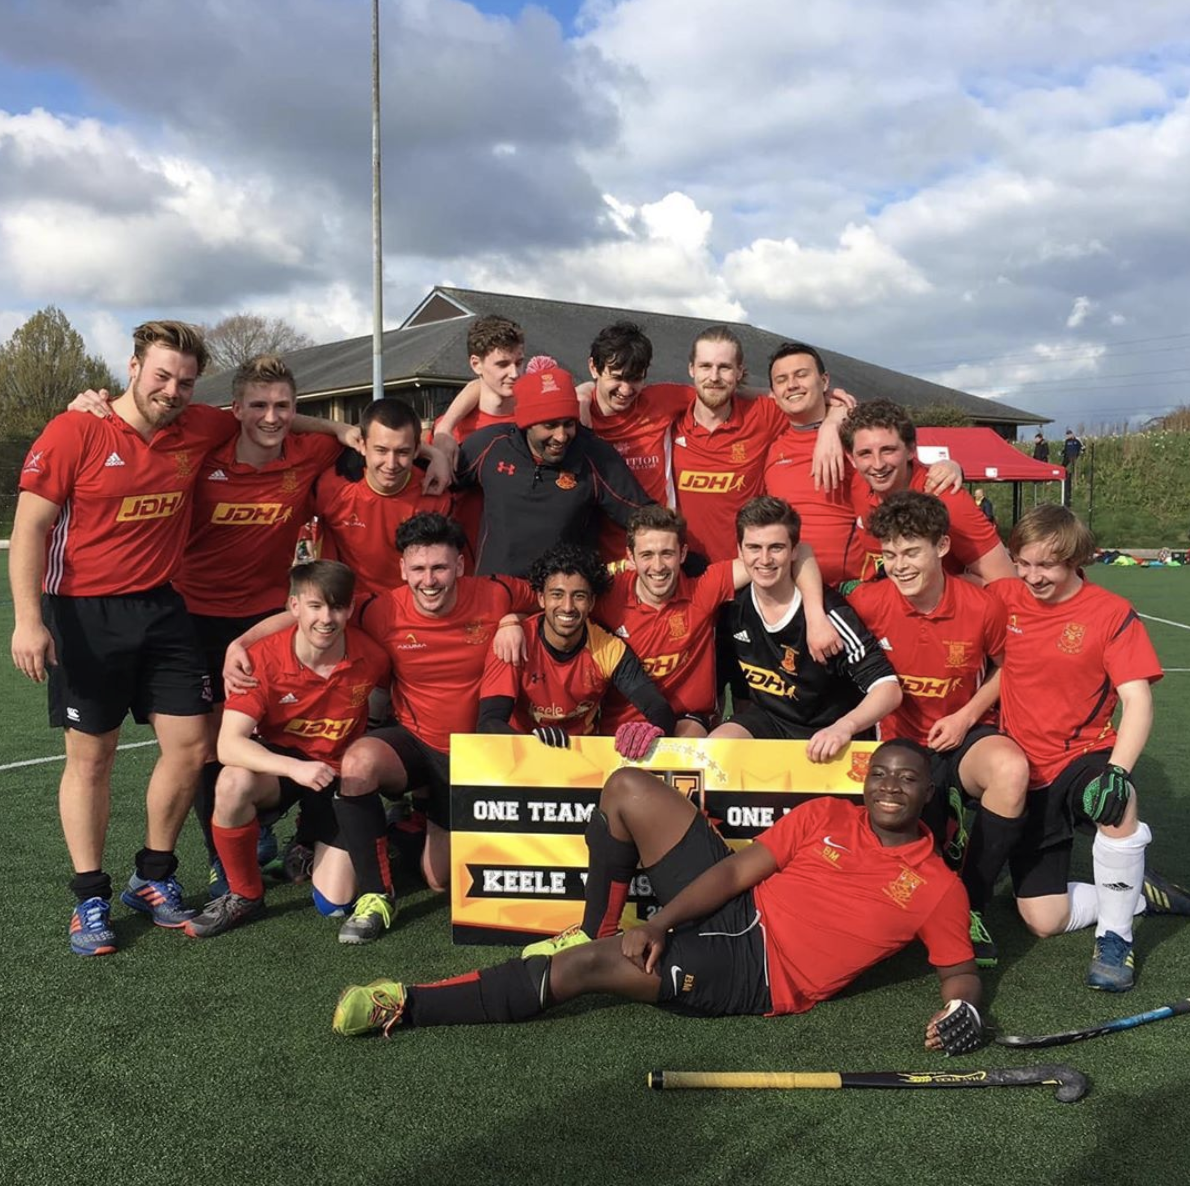 Men's hockey team with the winners varsity sign